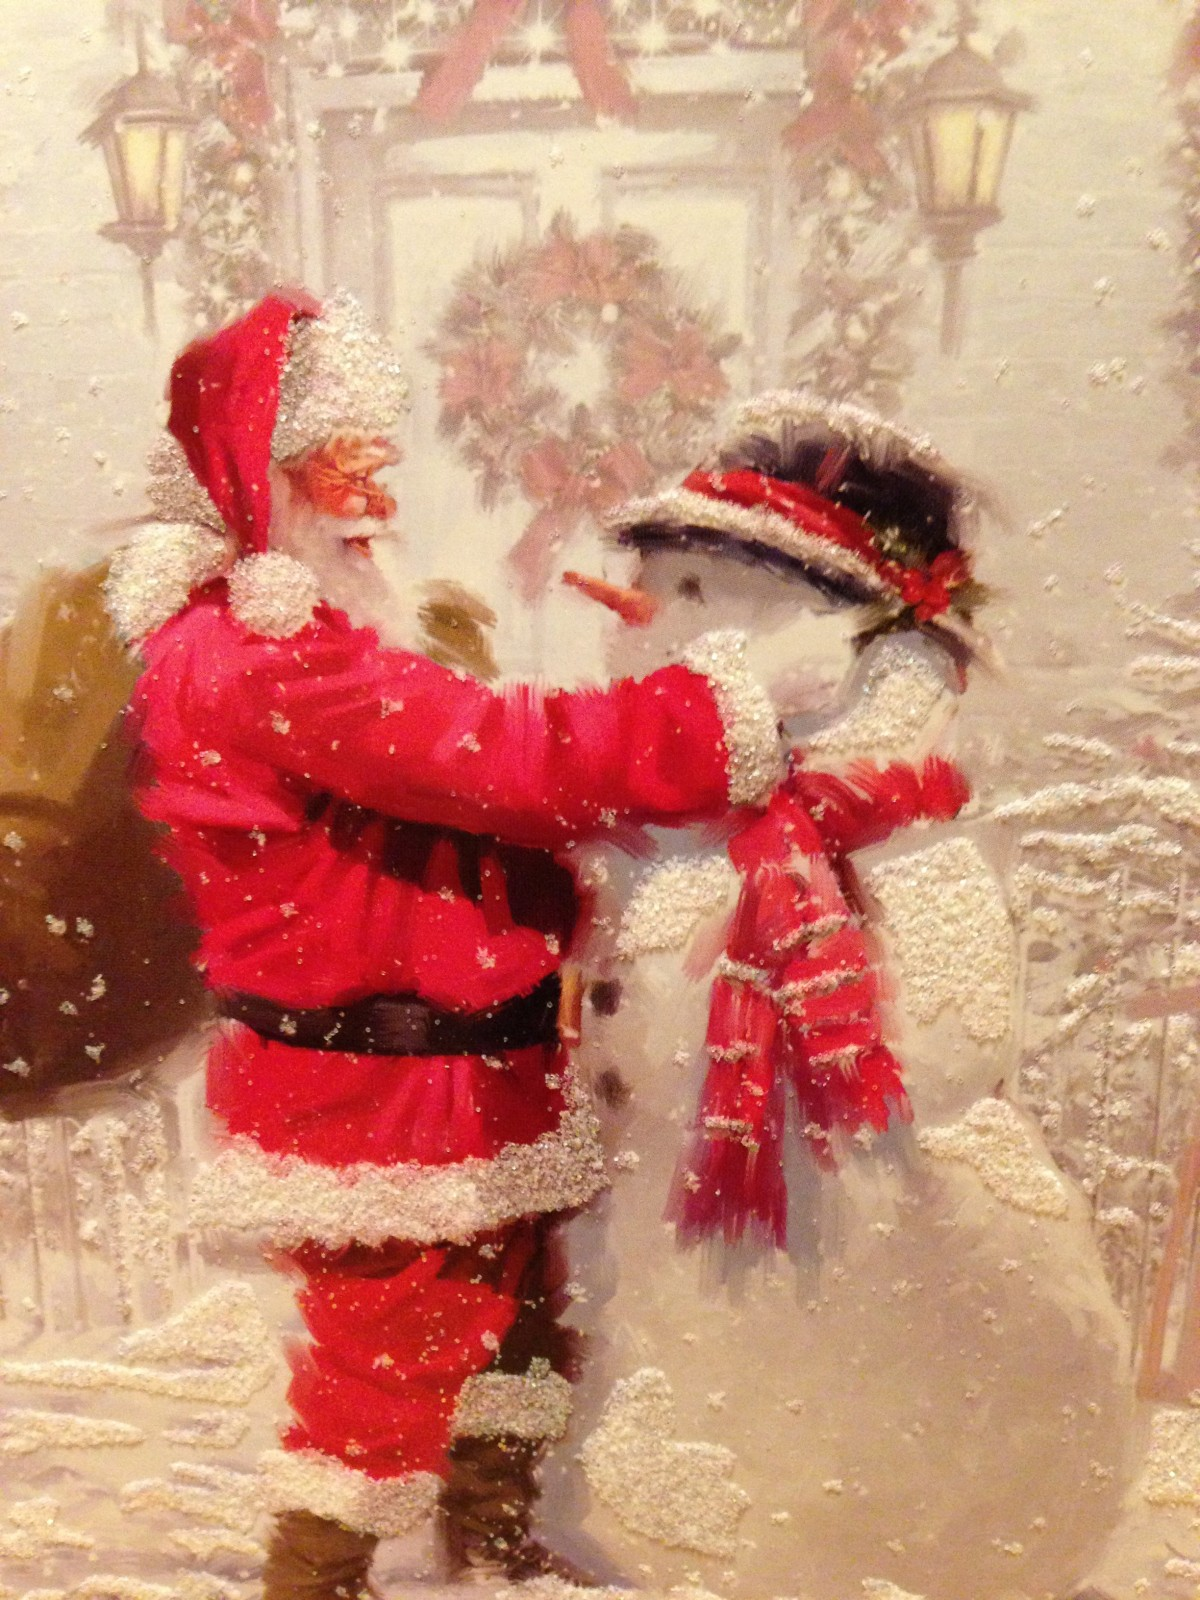 Iphone Wallpaper Website Free Images Snow Winter Red Holiday Christmas